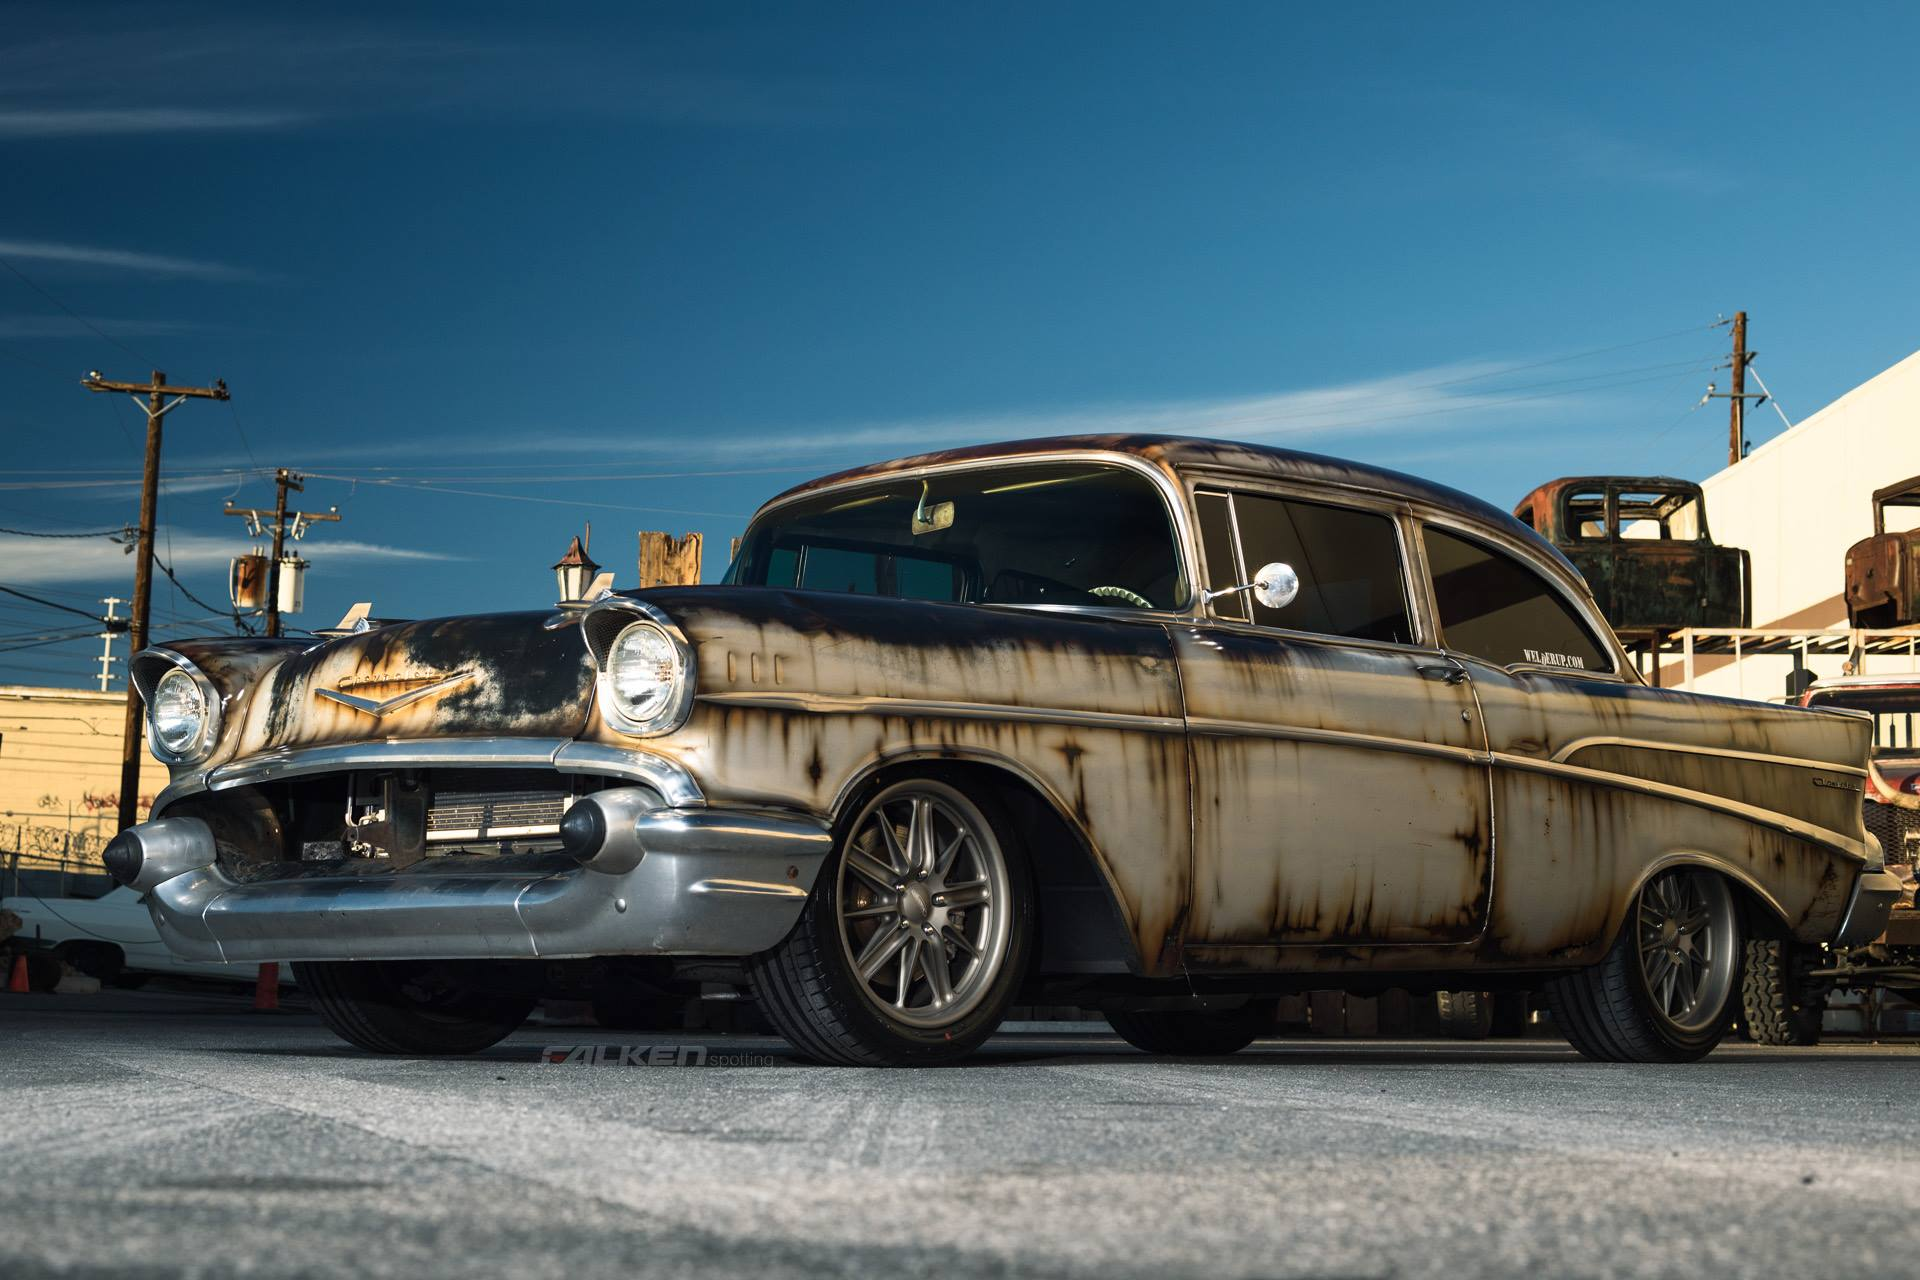 Chevrolet Bel Air 57 Hispotion